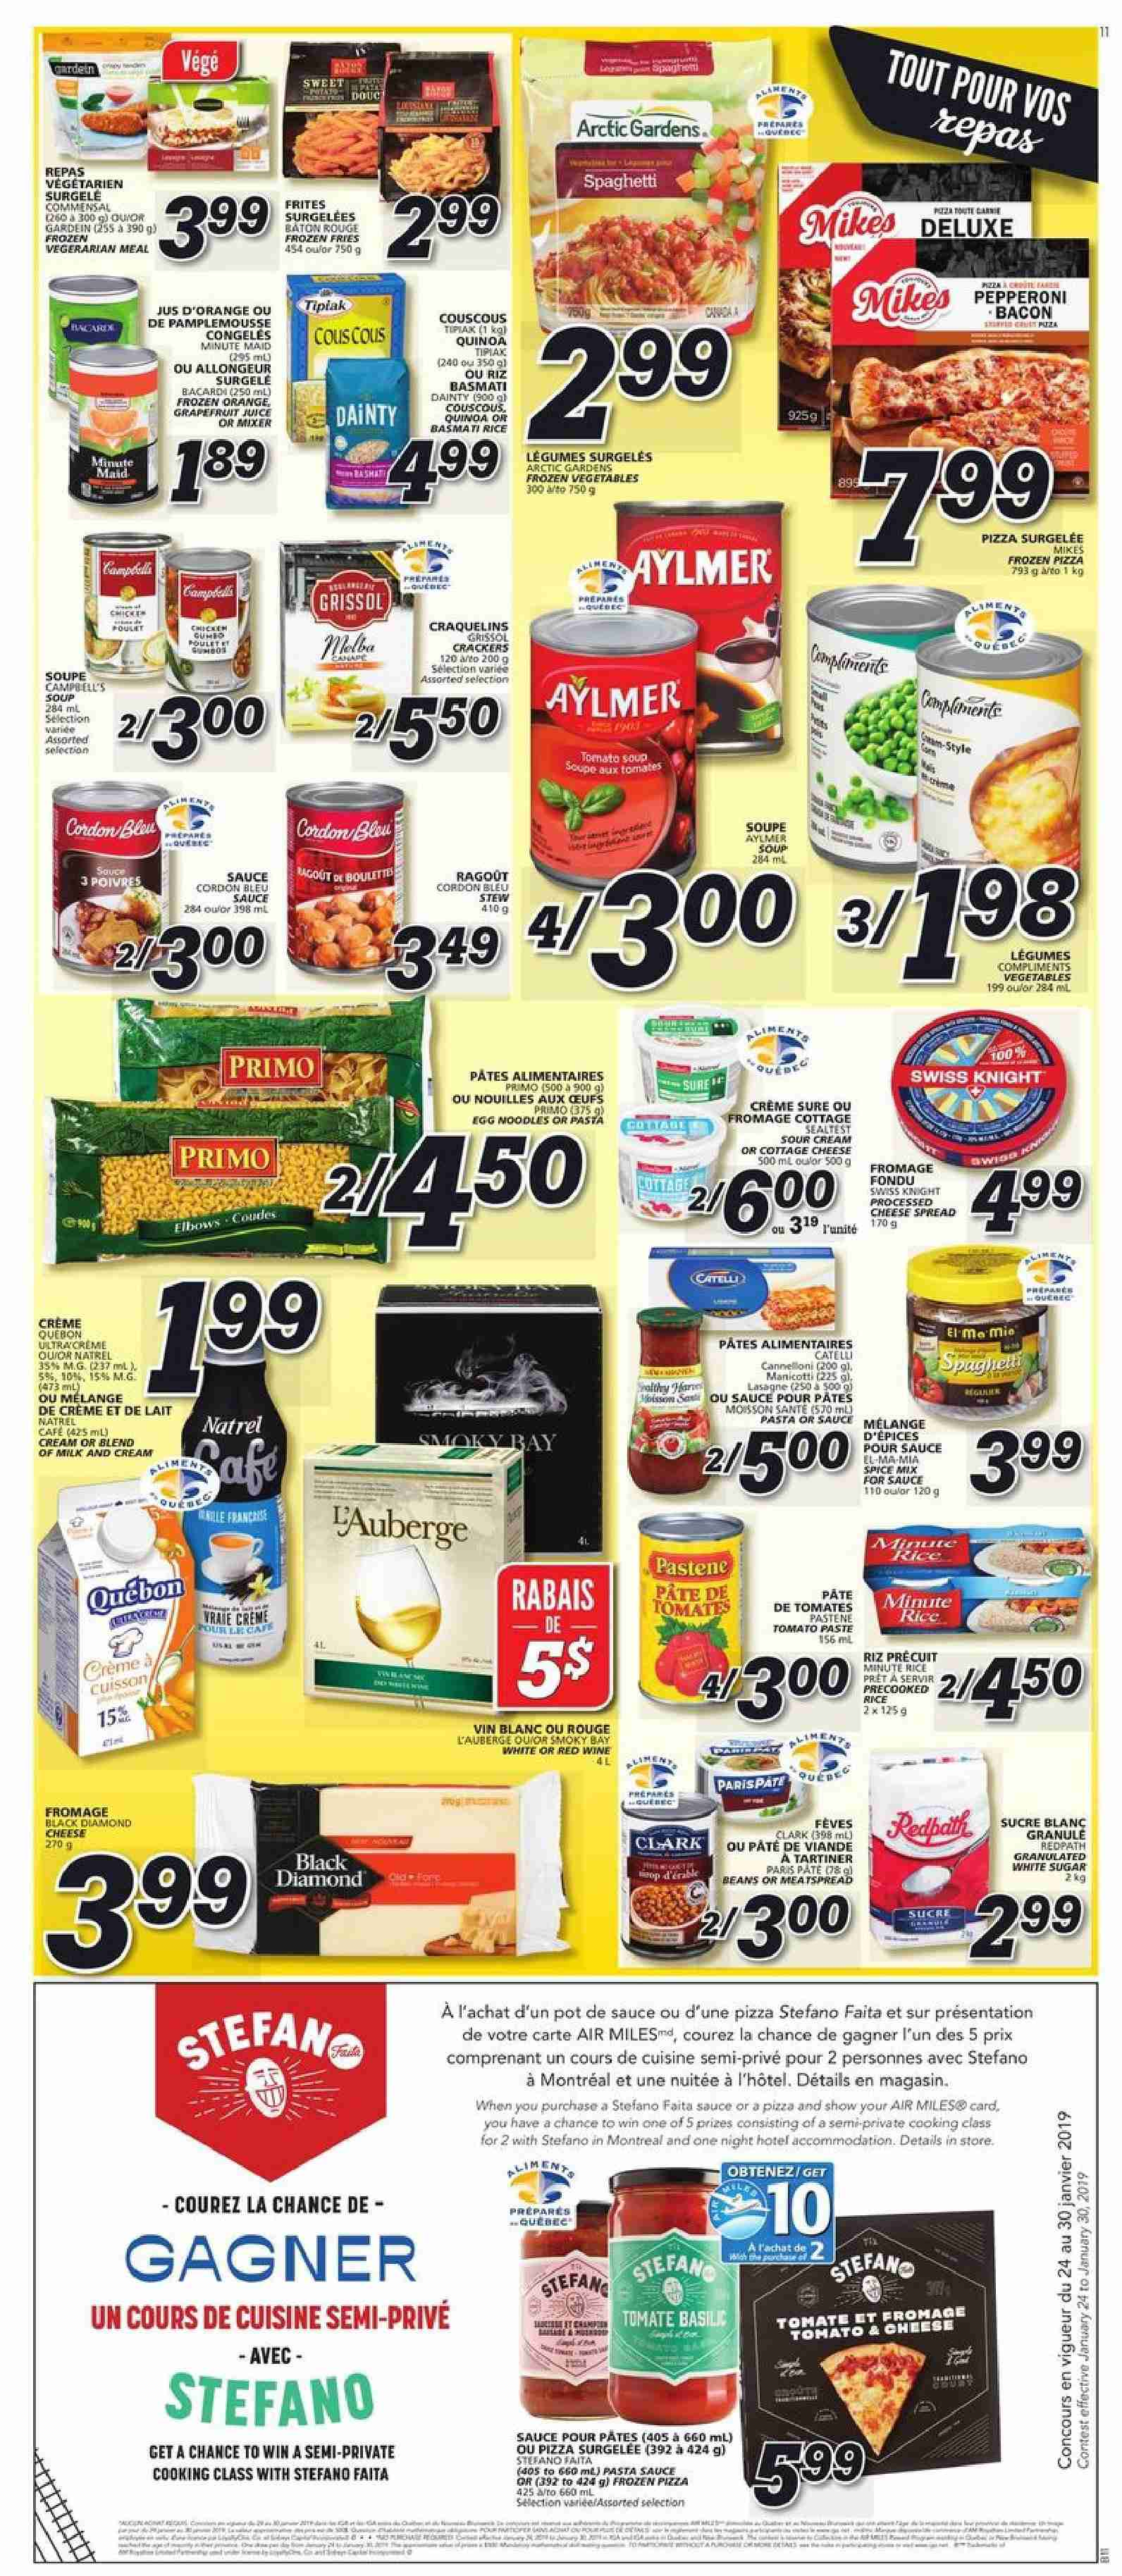 IGA Flyer  - January 24, 2019 - January 30, 2019. Page 7.